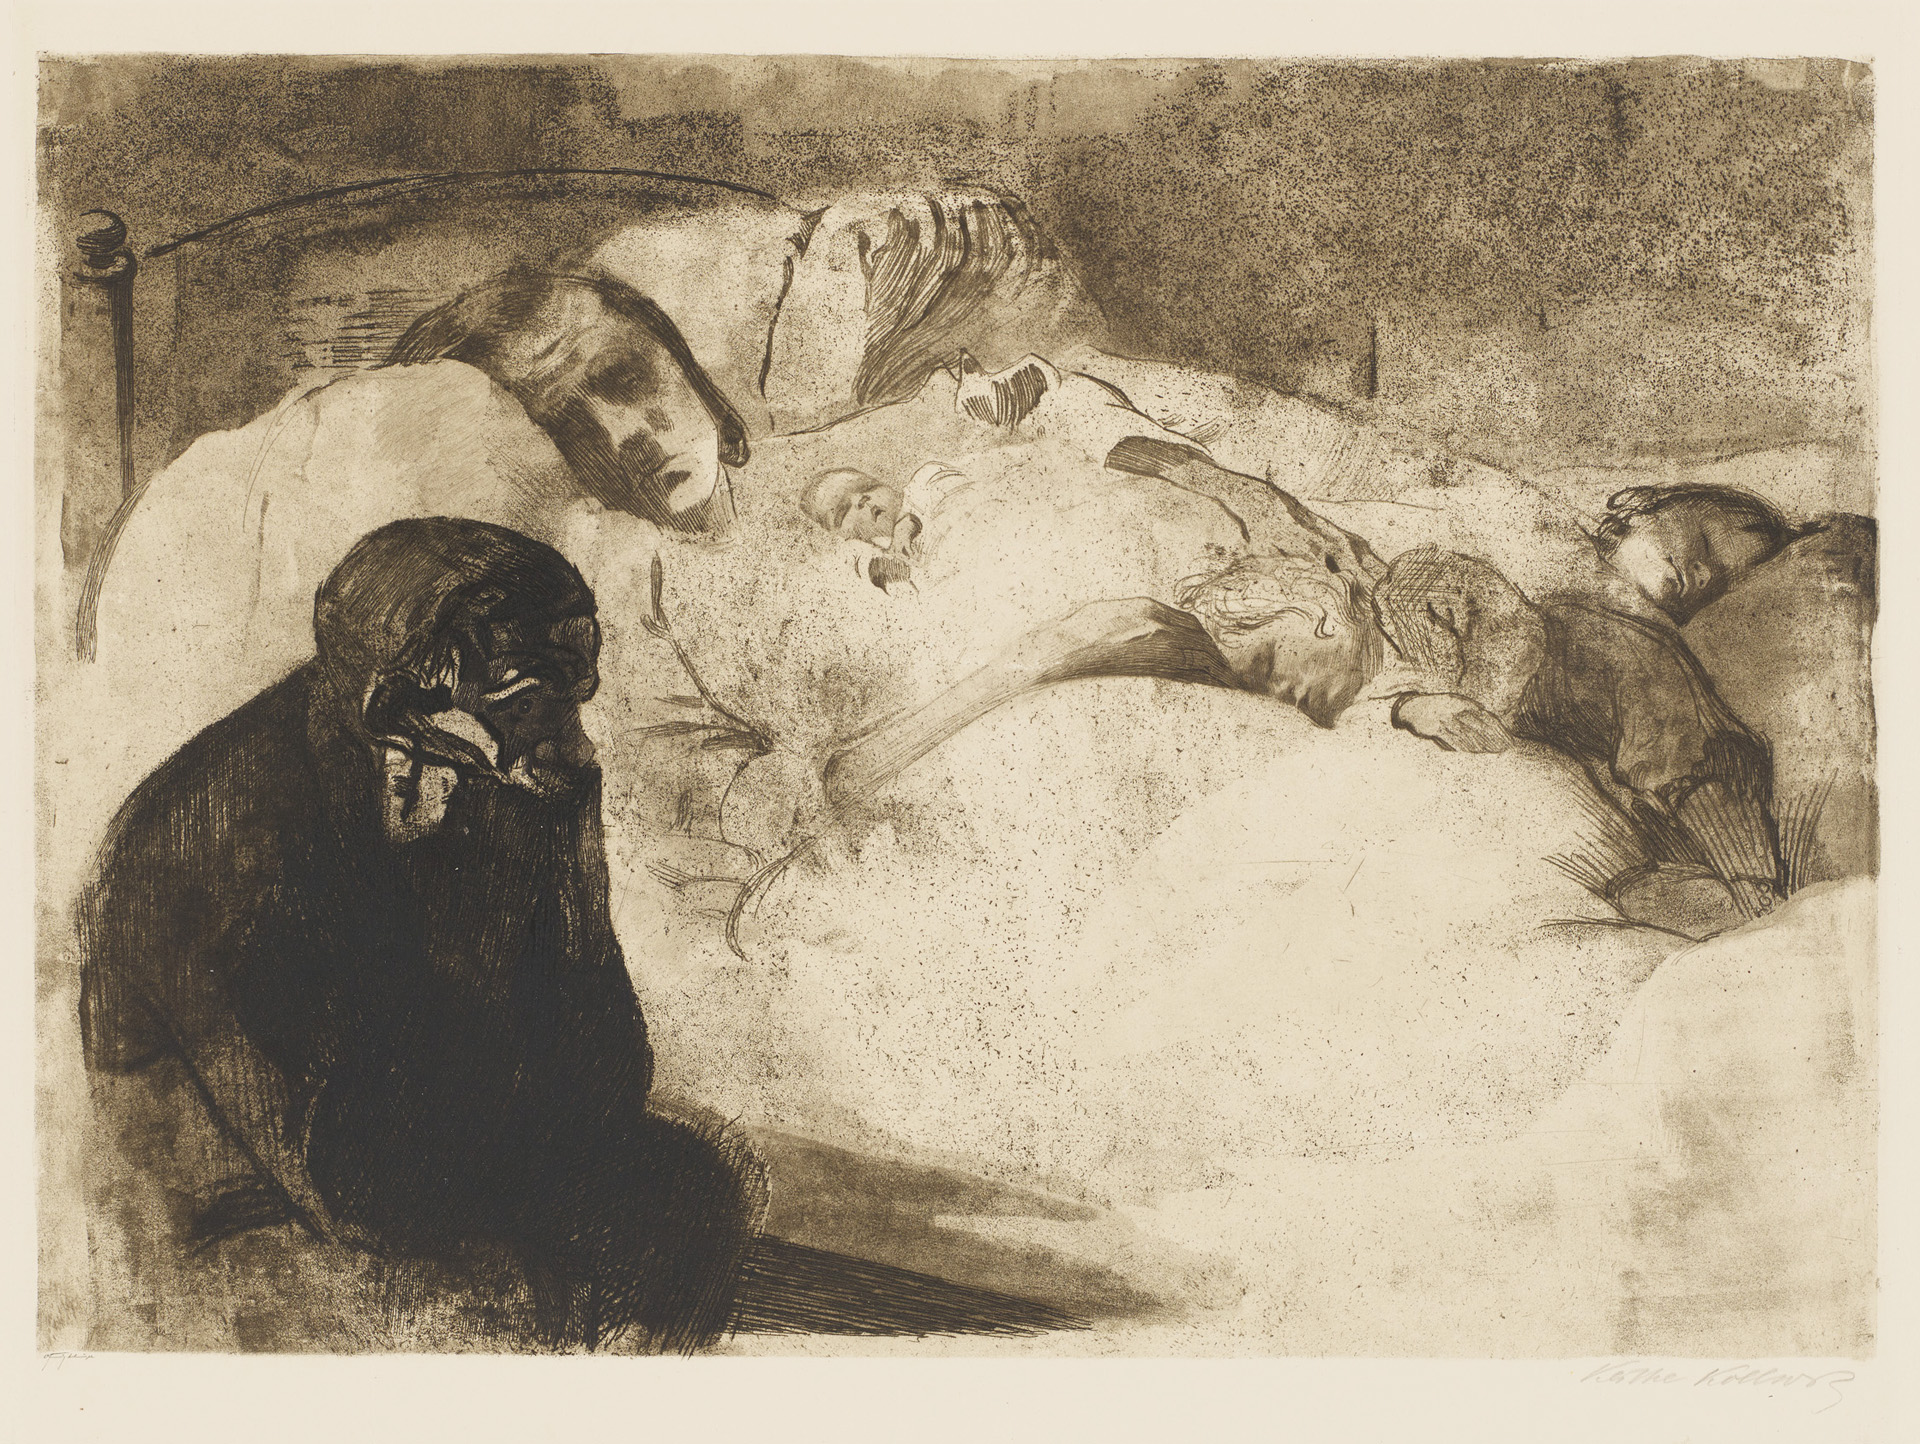 Käthe Kollwitz, Unemployment, 1909, line etching, drypoint, aquatint, sandpaper and soft ground with imprint of Ziegler's transfer paper, Kn 104 VI d, Cologne Kollwitz Collection © Käthe Kollwitz Museum Köln